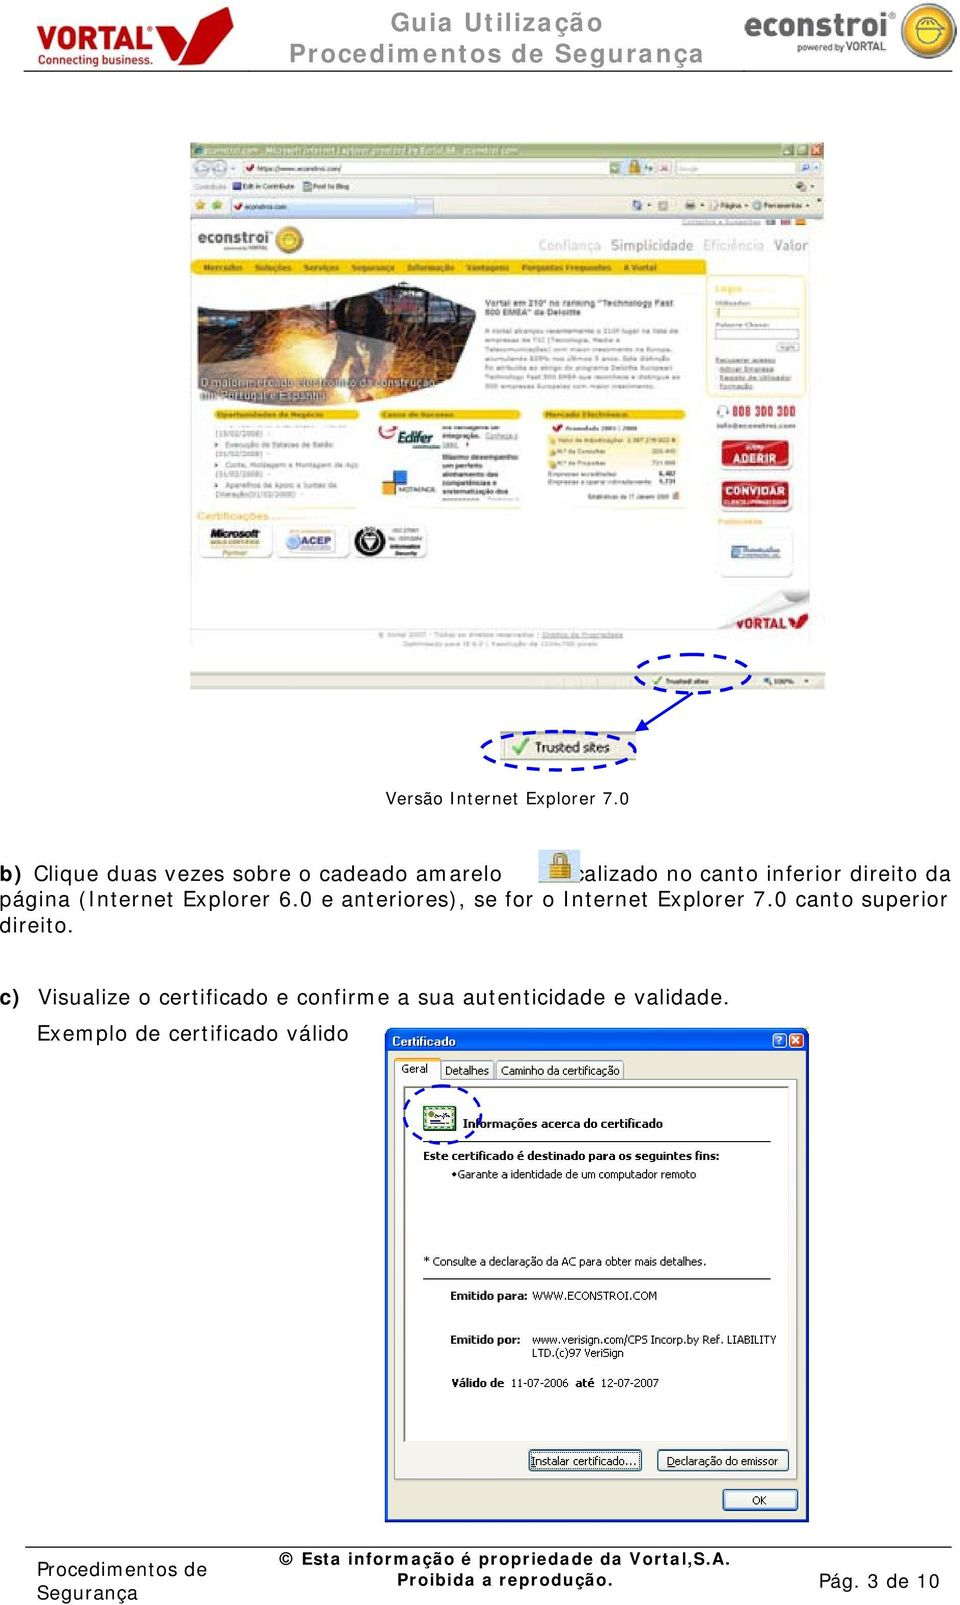 0 e anteriores), se for o Internet Explorer 7.0 canto superior direito.